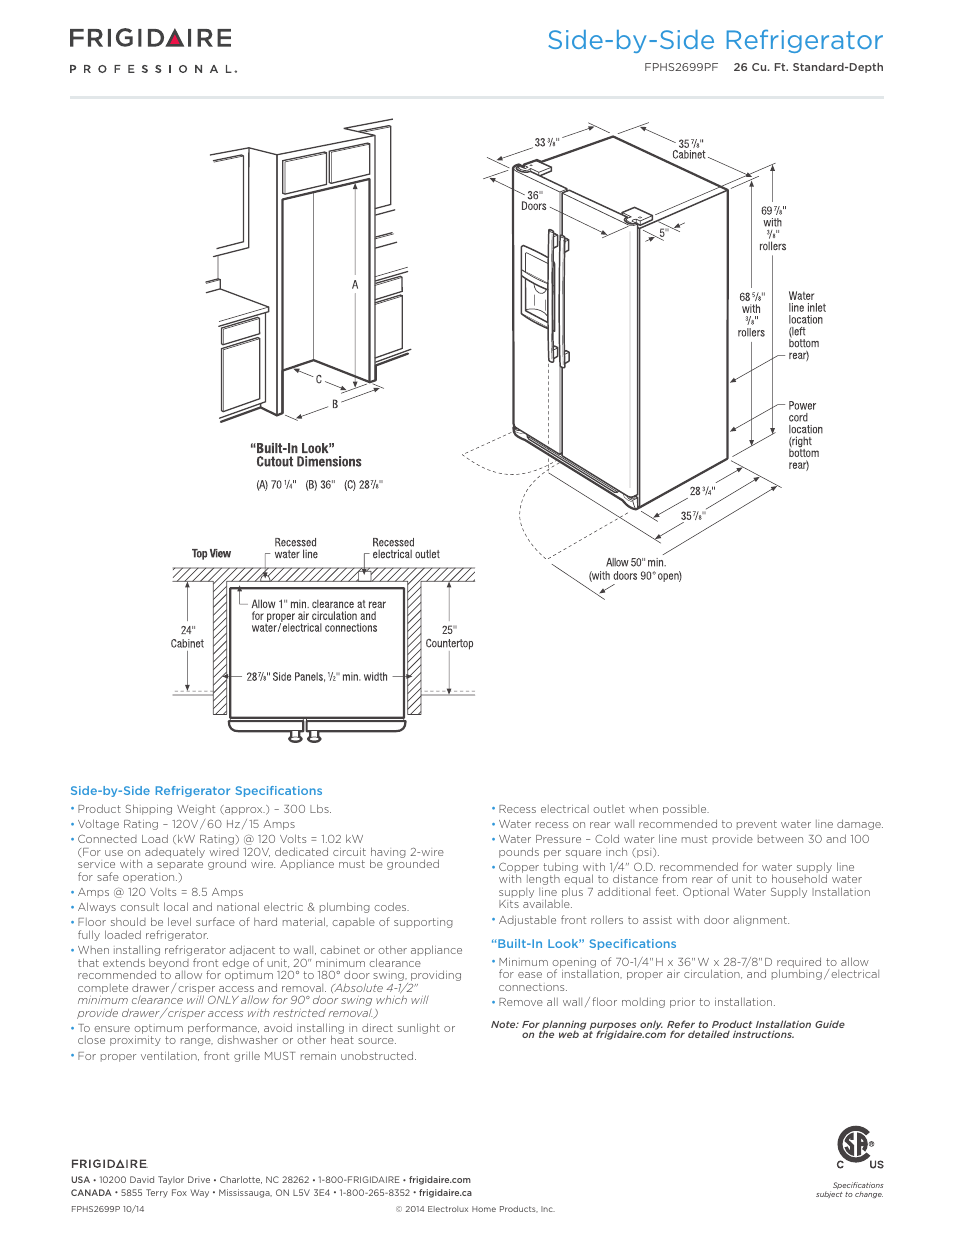 Side-by-side refrigerator | FRIGIDAIRE FPHS2699PF User Manual | Page 3 / 4